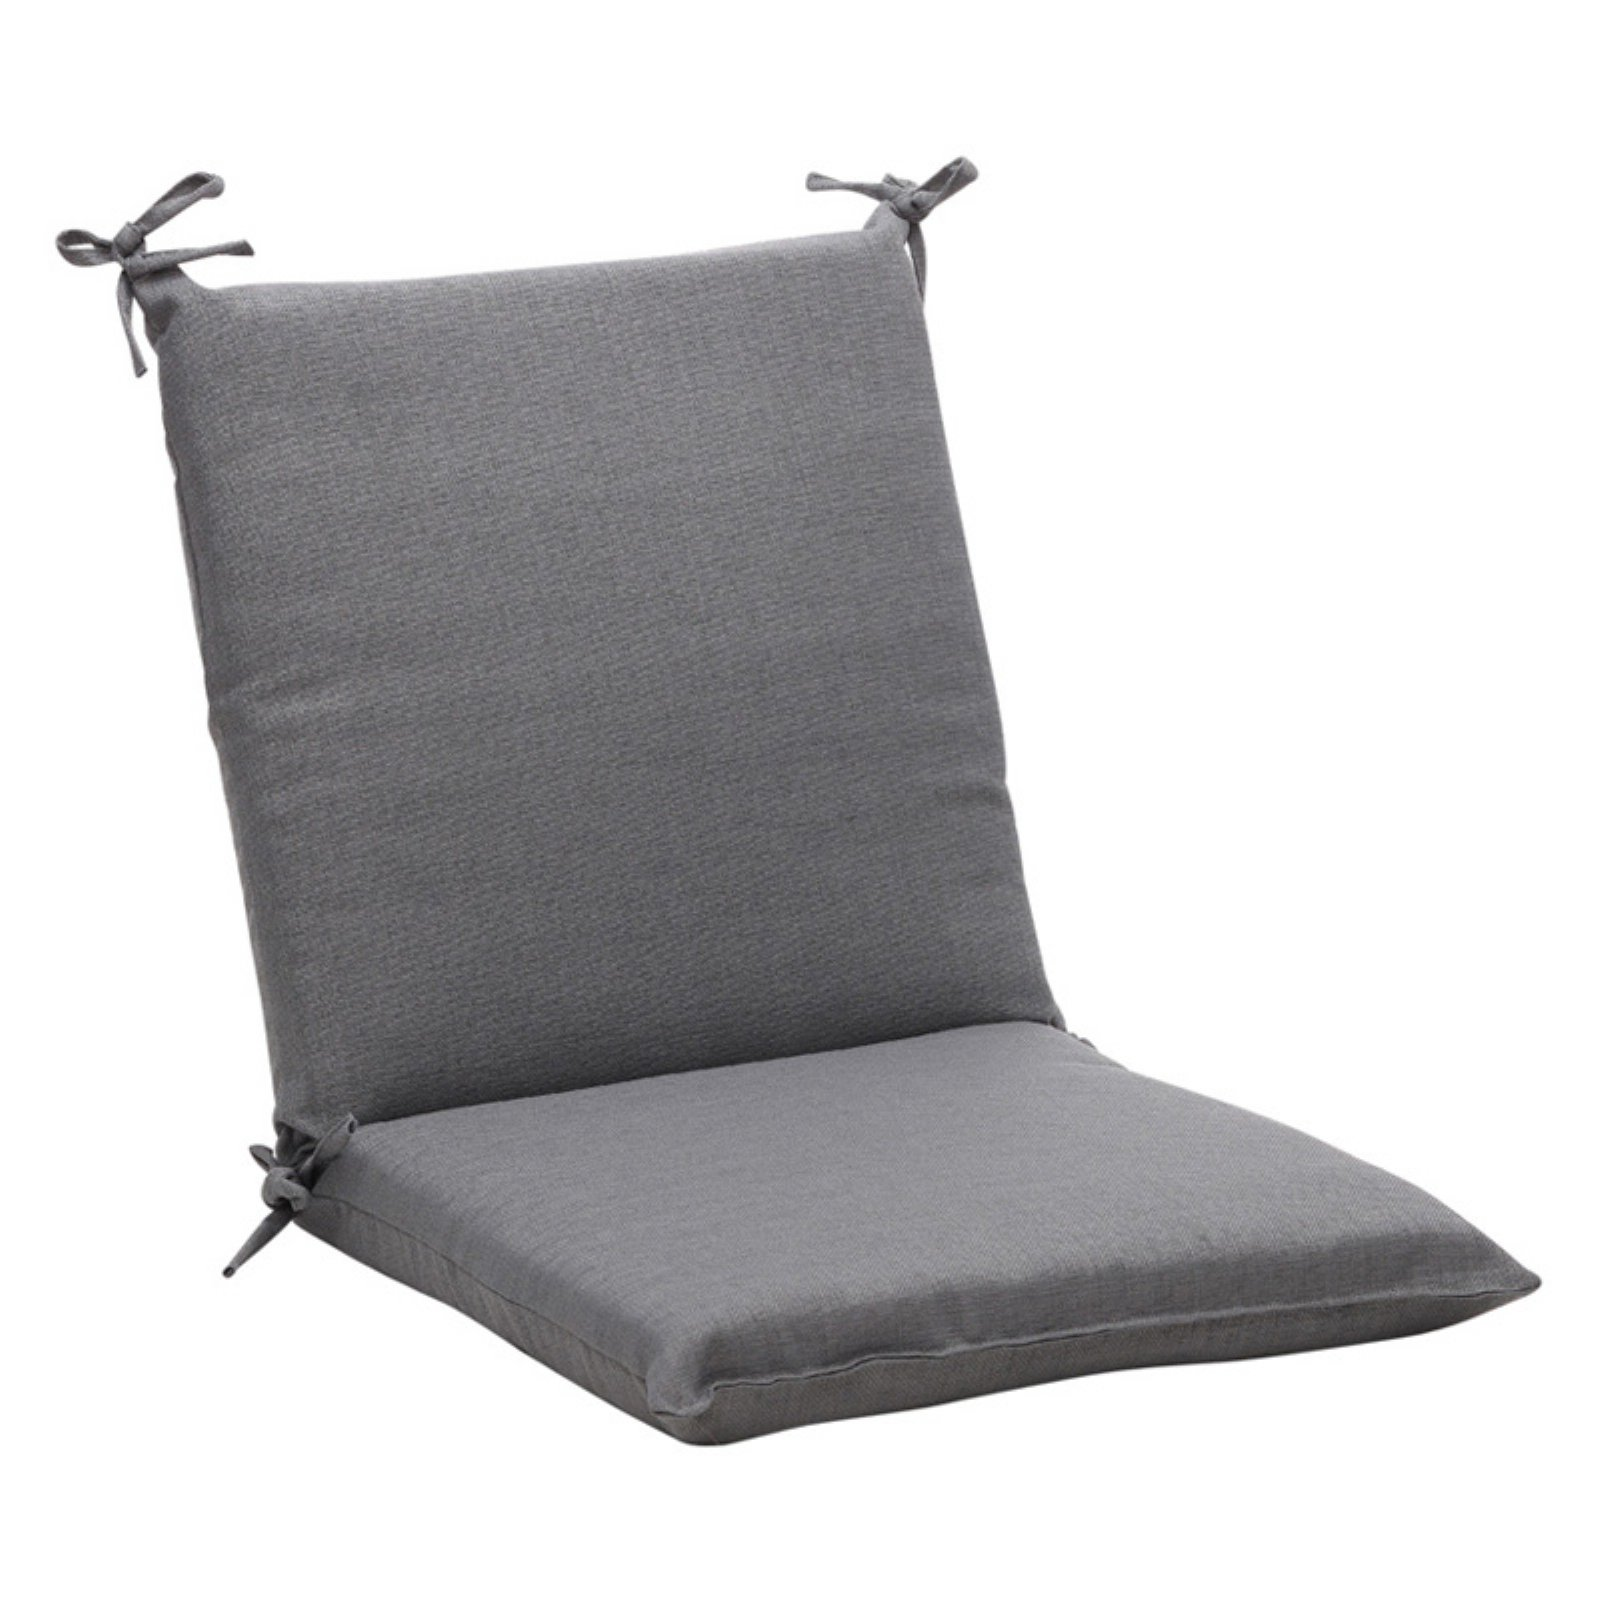 Pillow Perfect Outdoor Textured Solid Chair Cushion - 36....